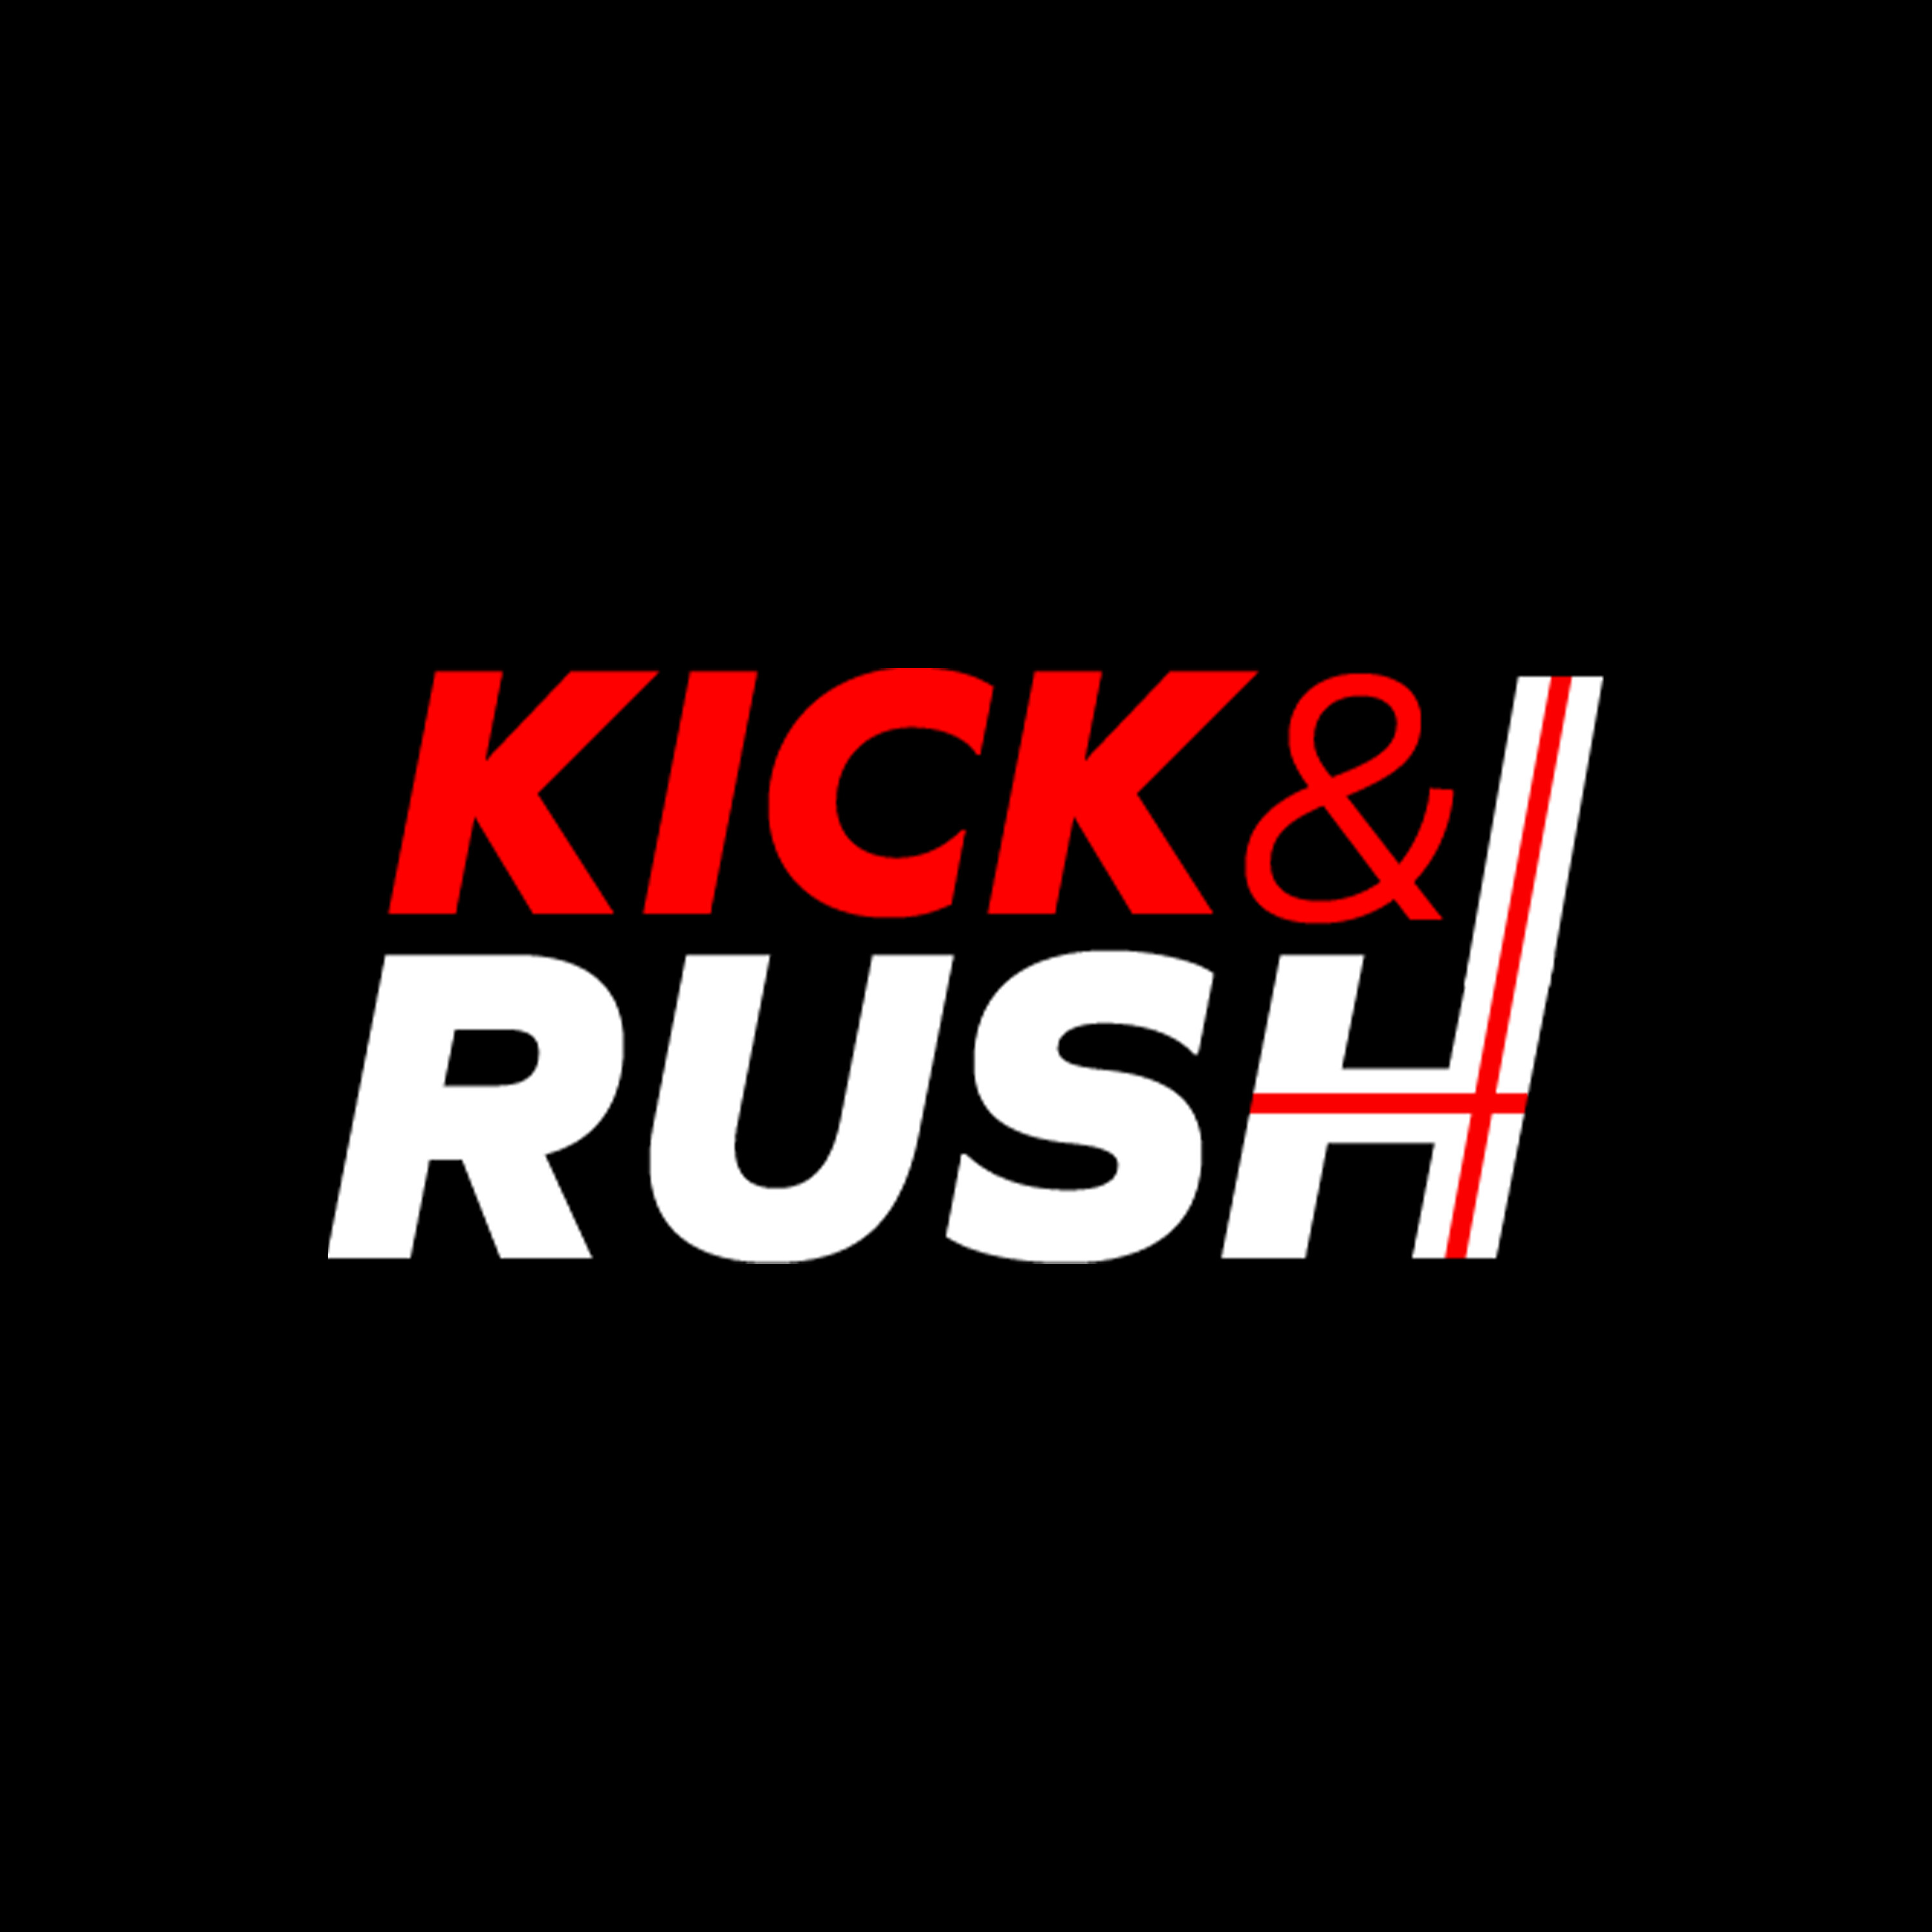 KICK&RUSH - Over. Out. Ole.